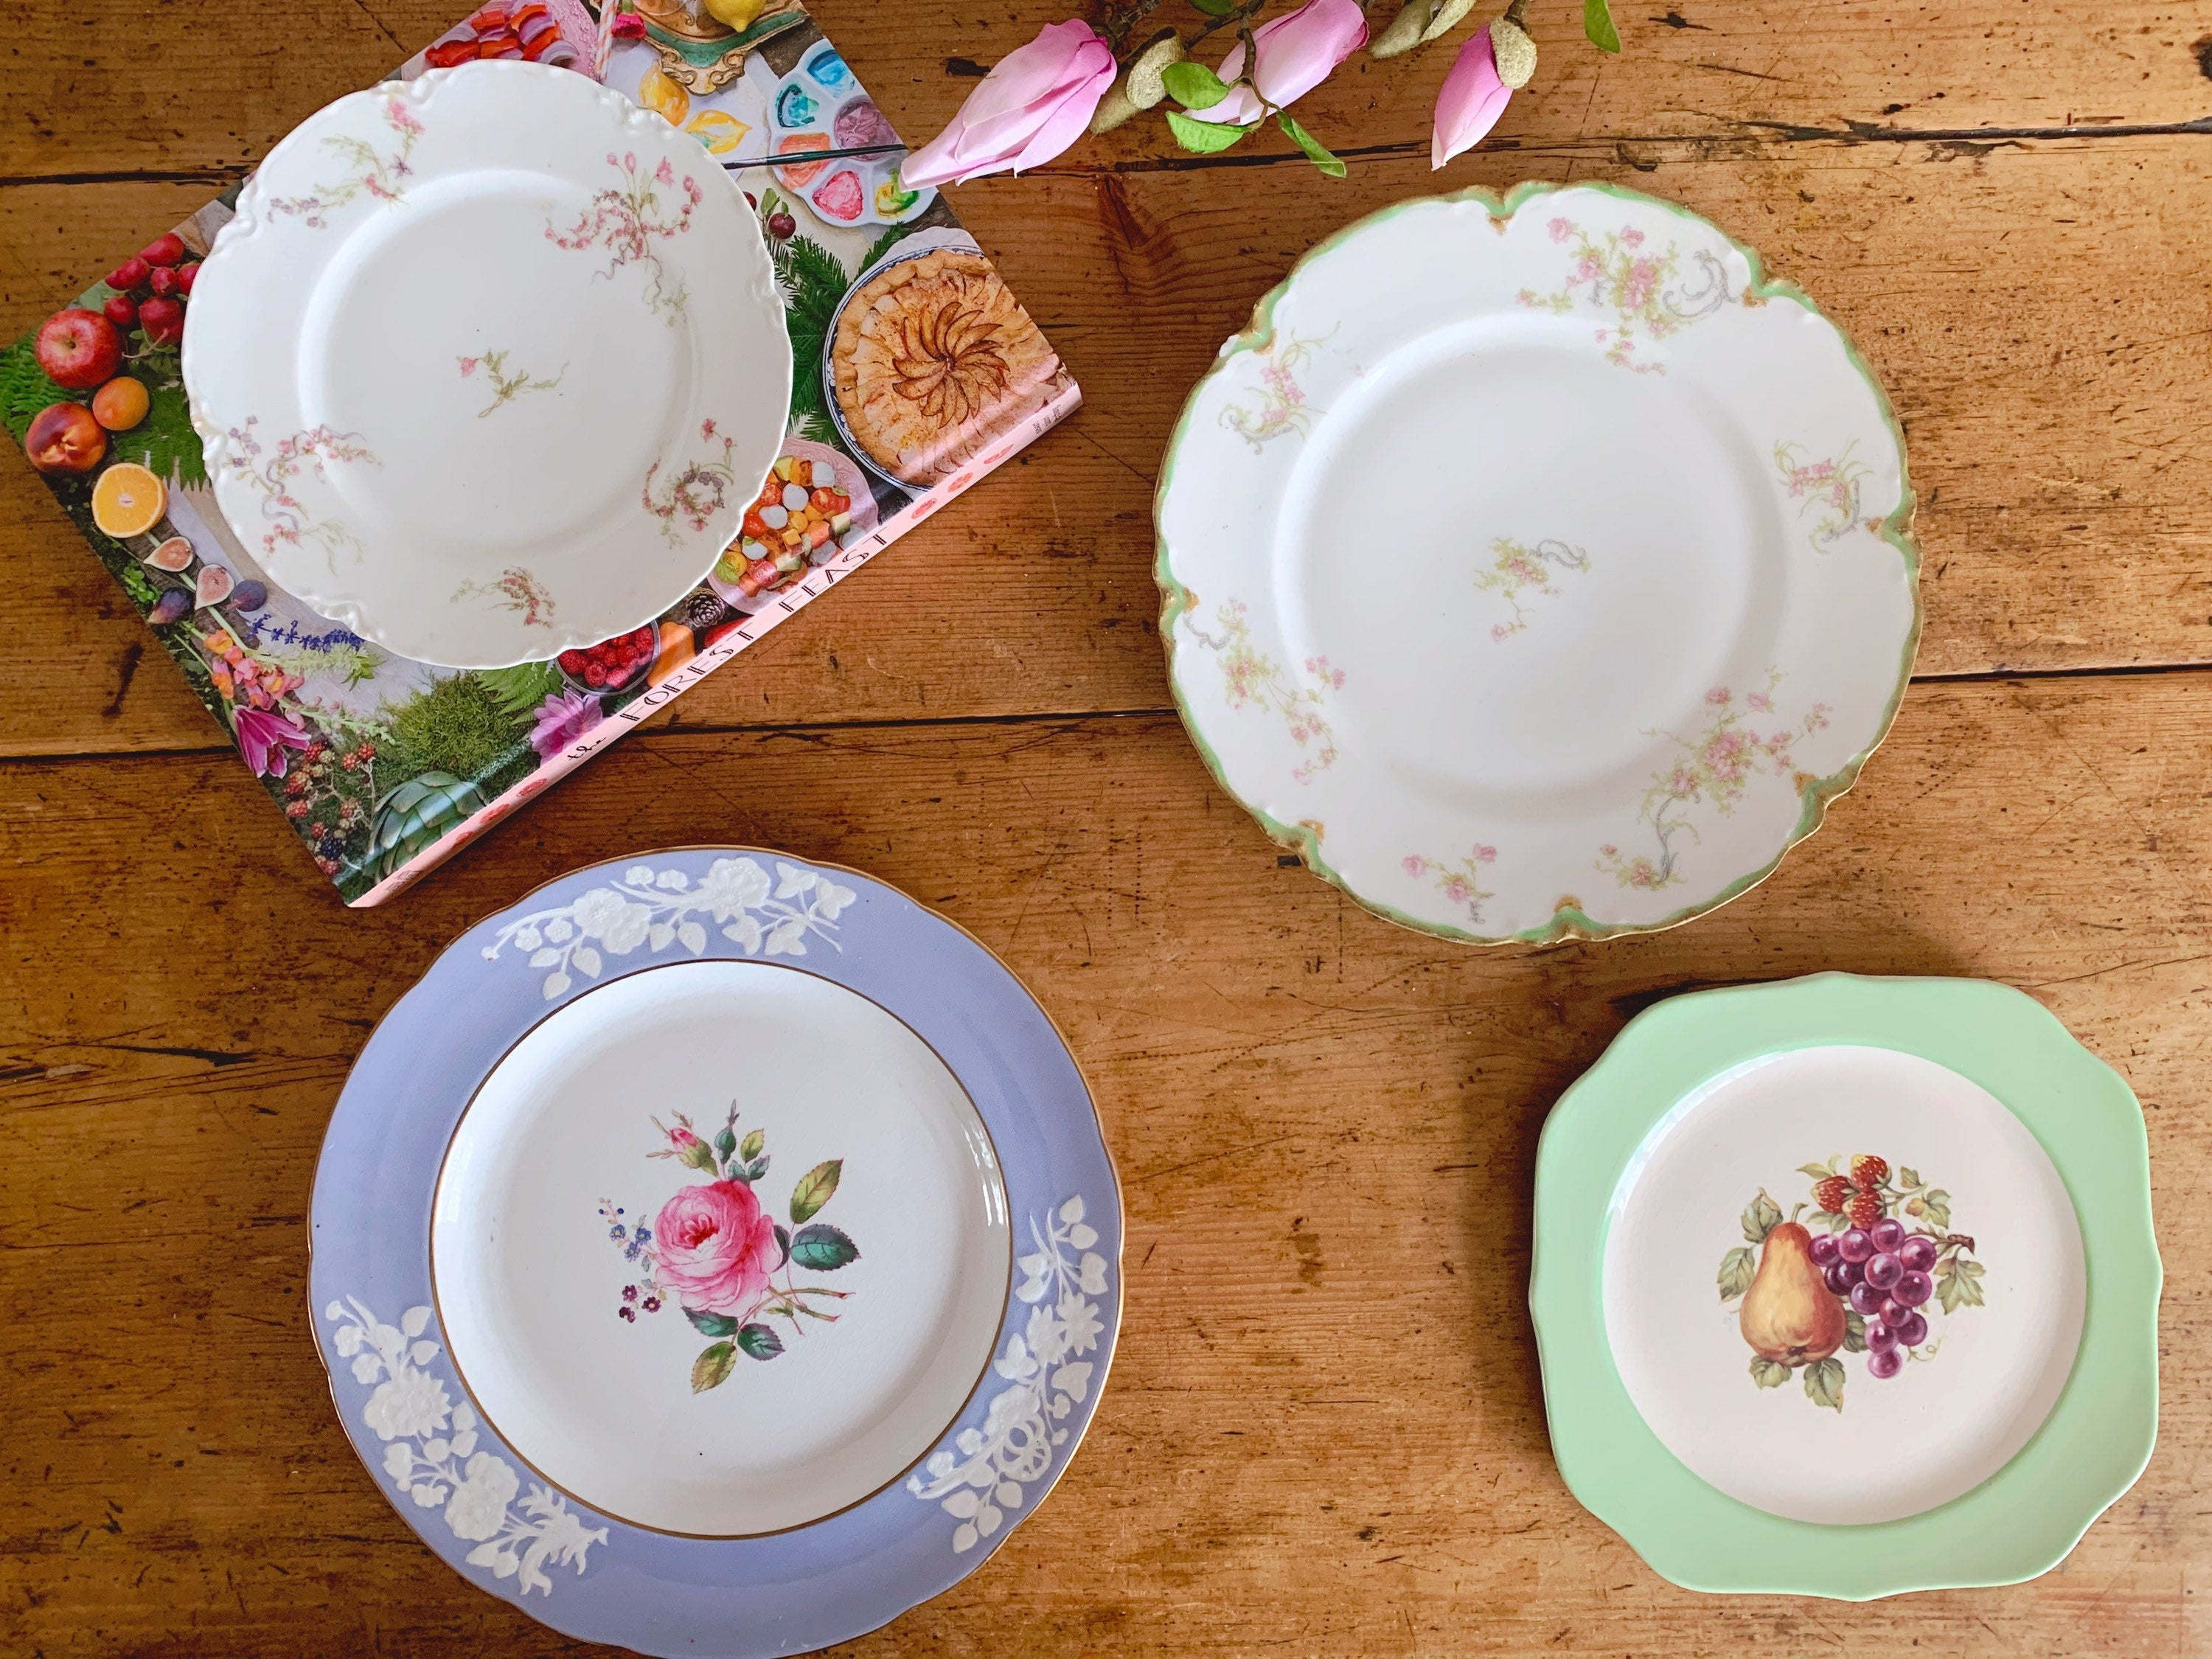 Mix and Match Vintage Fine China Floral Plates | Haviland Limoges Crooksville U.S.A. | French China English China Porcelain Dinnerware